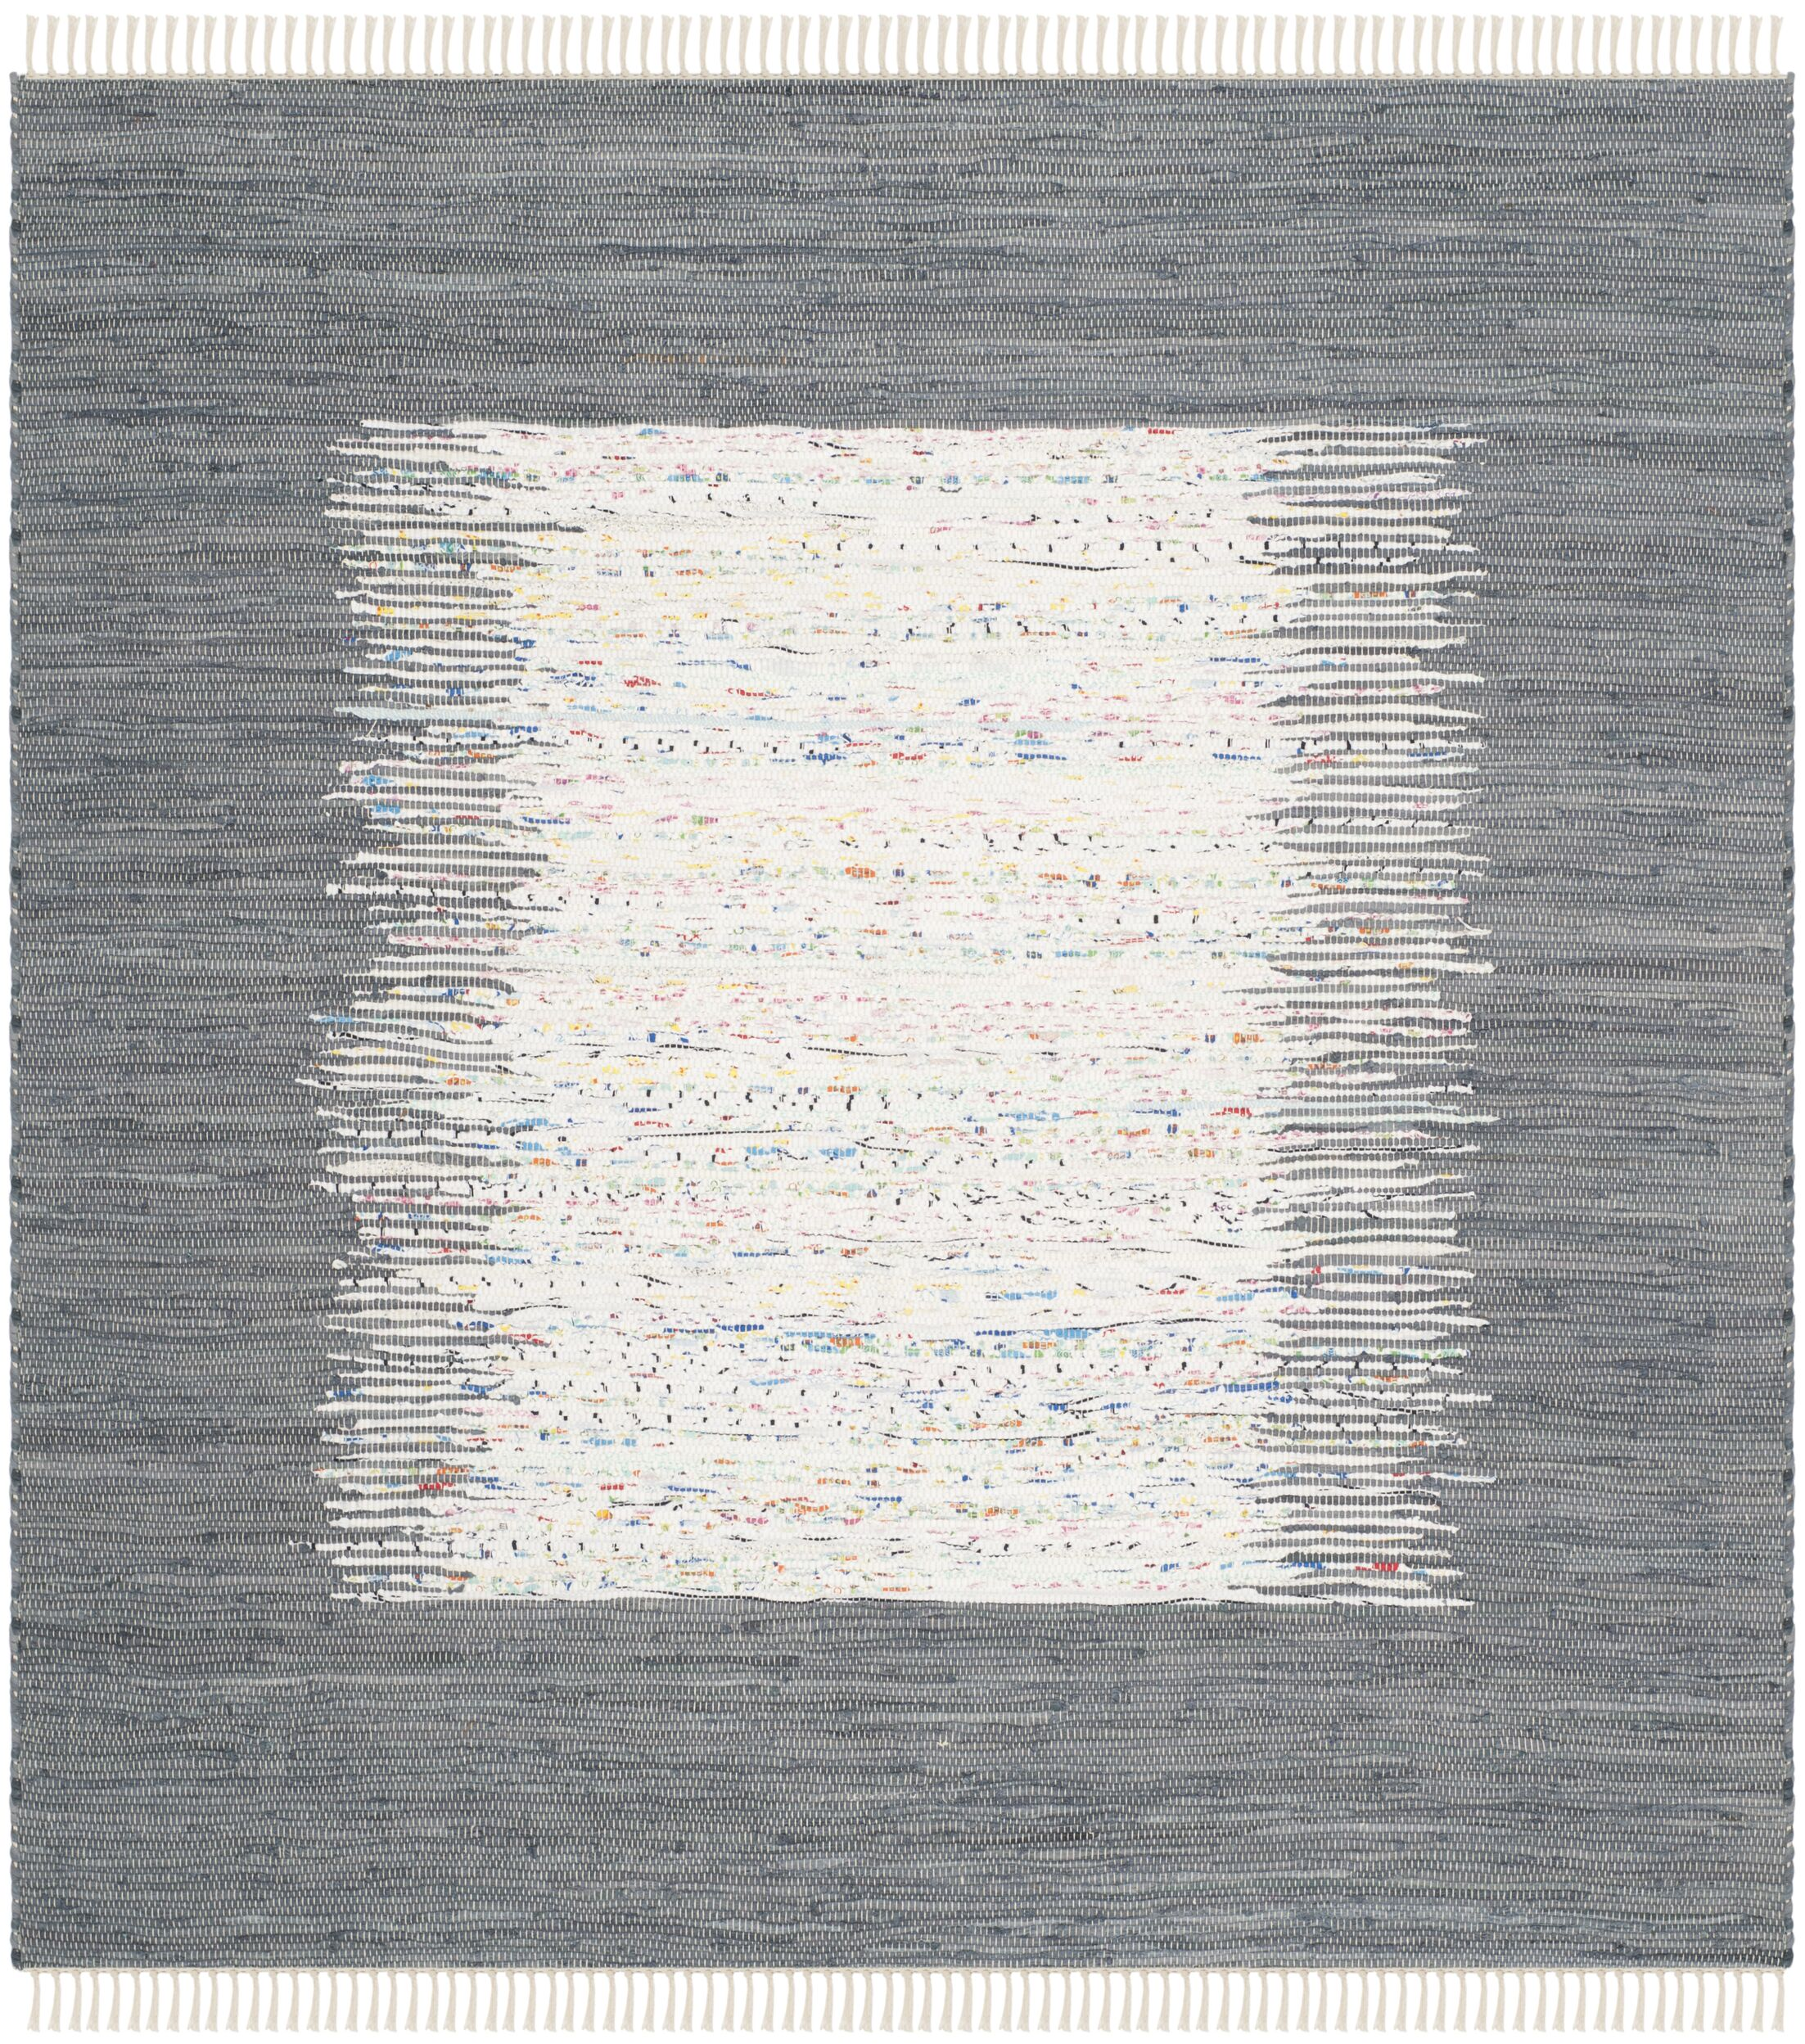 Jameson Contemporary Hand-Woven Ivory/Gray Area Rug Rug Size: Square 6'